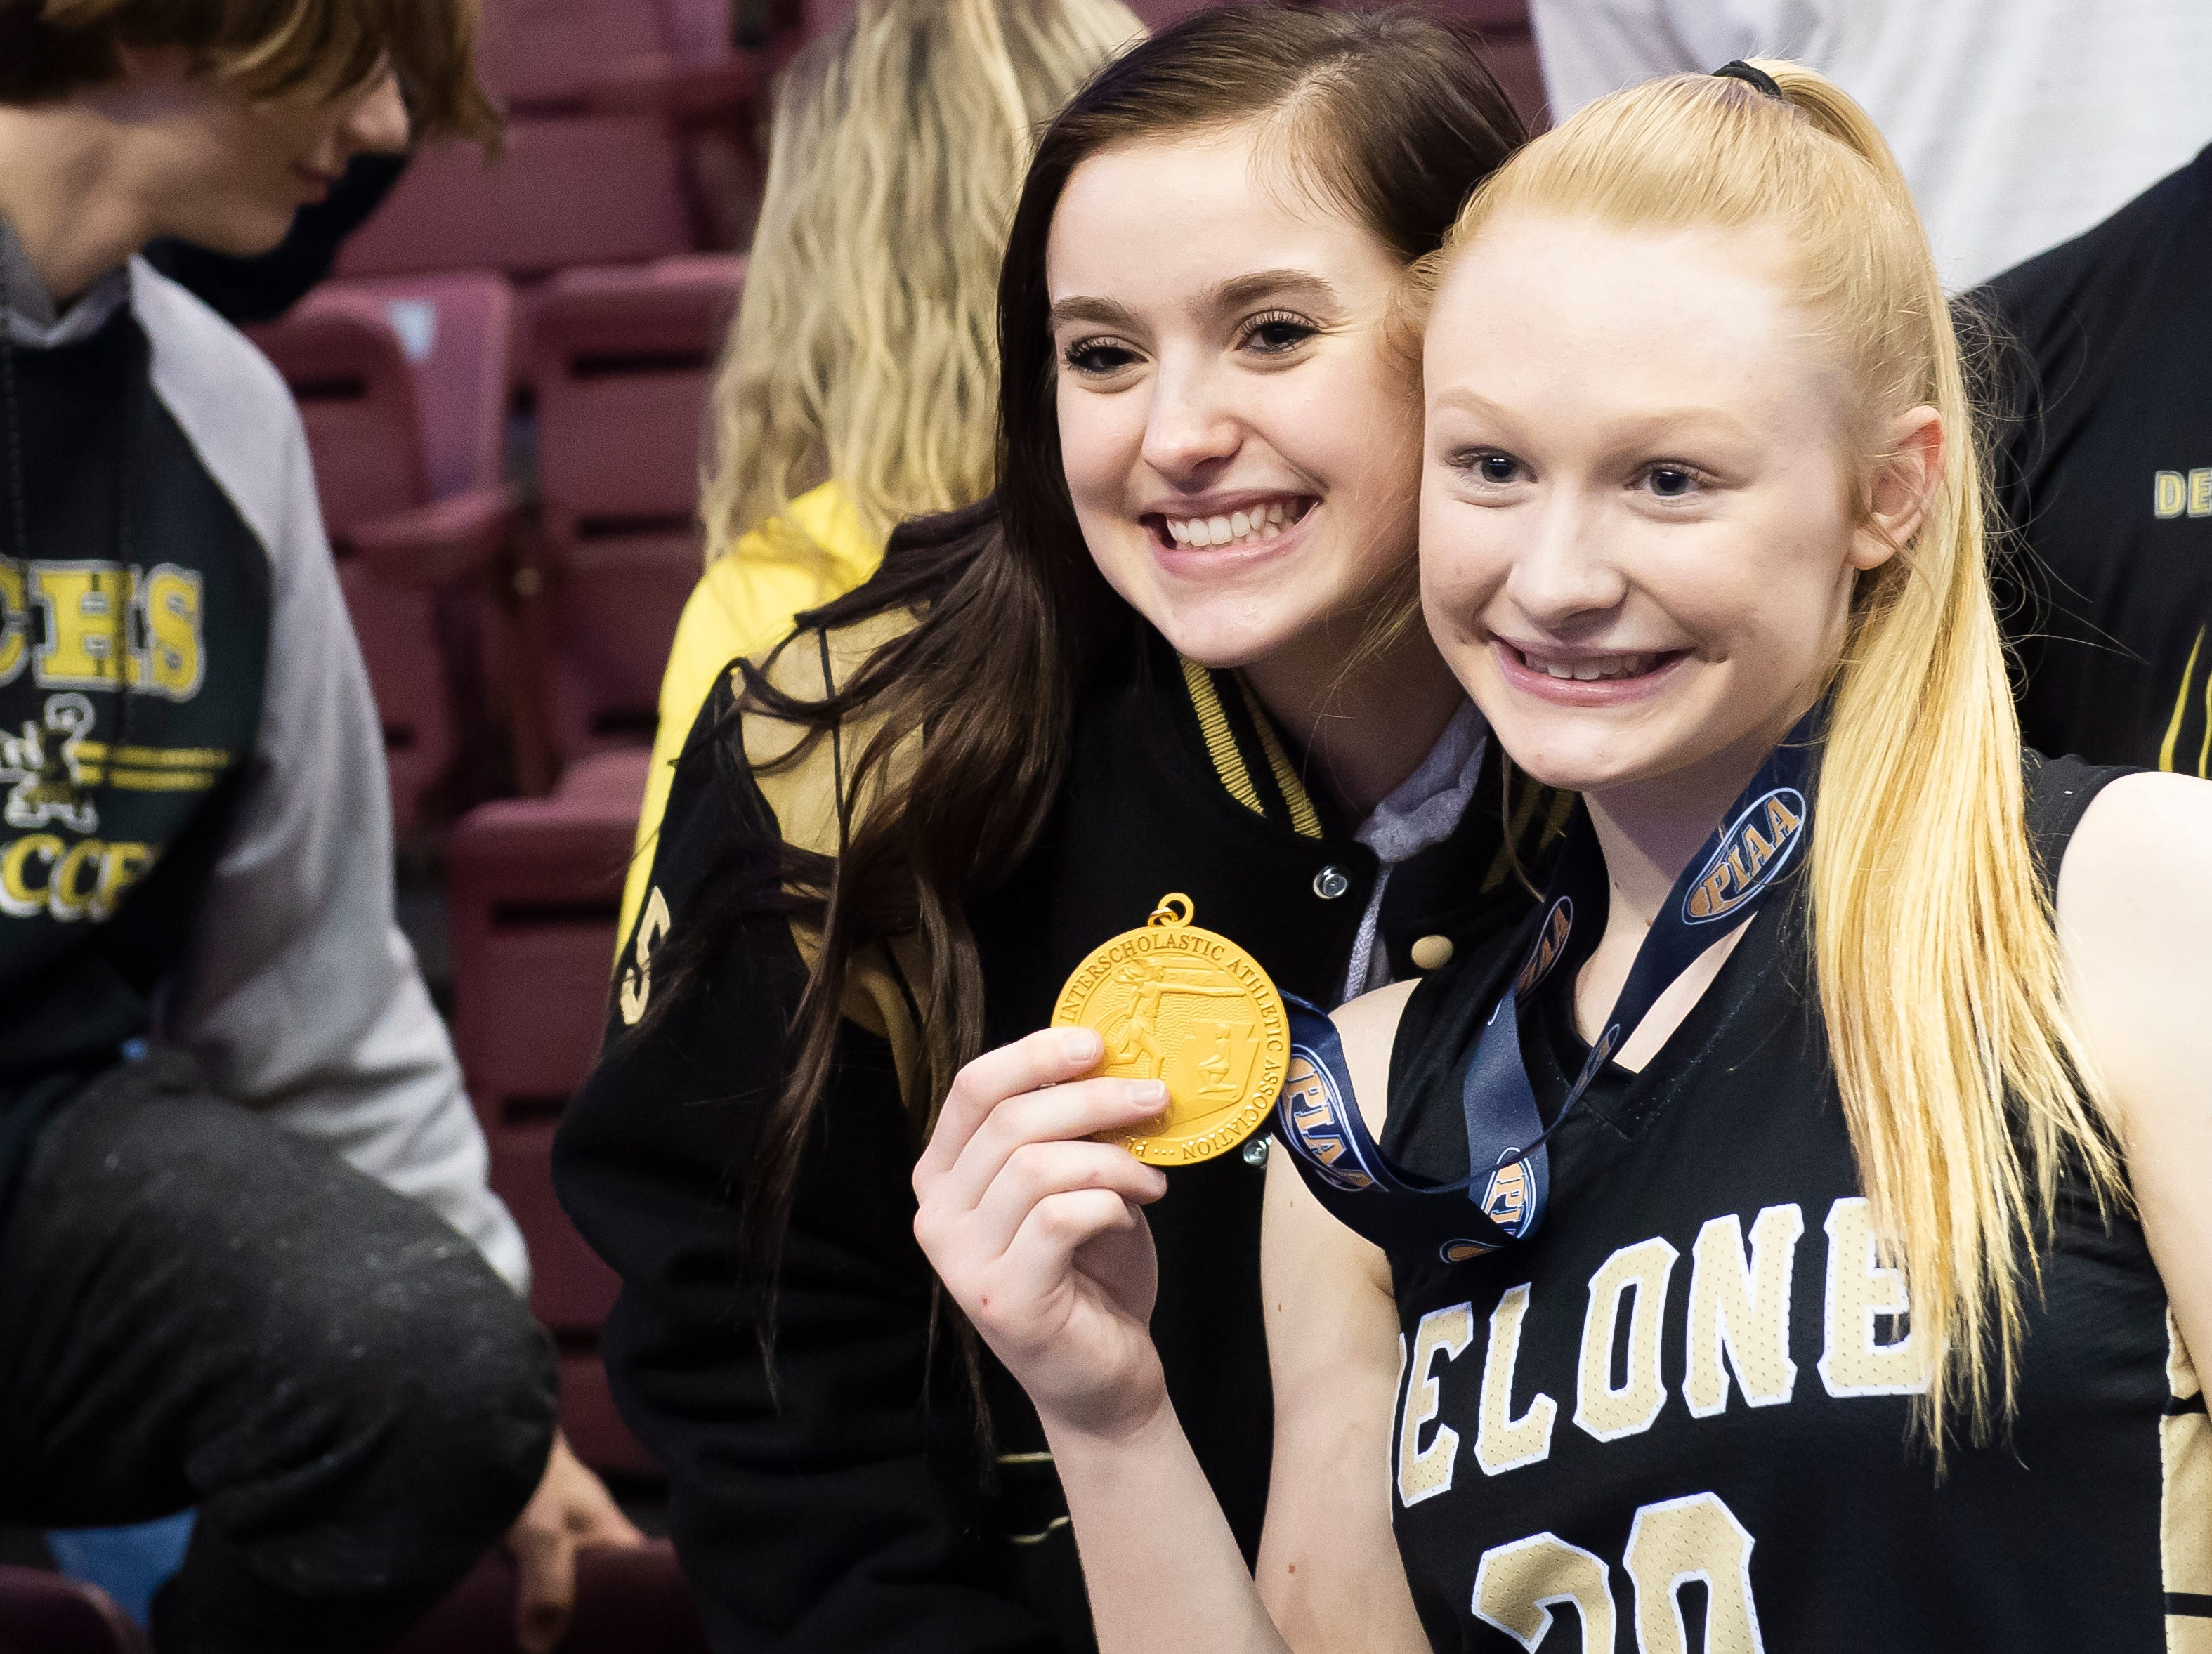 Delone Catholic's Brooke Lawyer holds up her gold medal as she poses for a photo with Emily Snyder after the Squirettes defeated Dunmore in the PIAA 3A championship game at the Giant Center in Hershey on Thursday, March 21, 2019. Delone won 49-43.